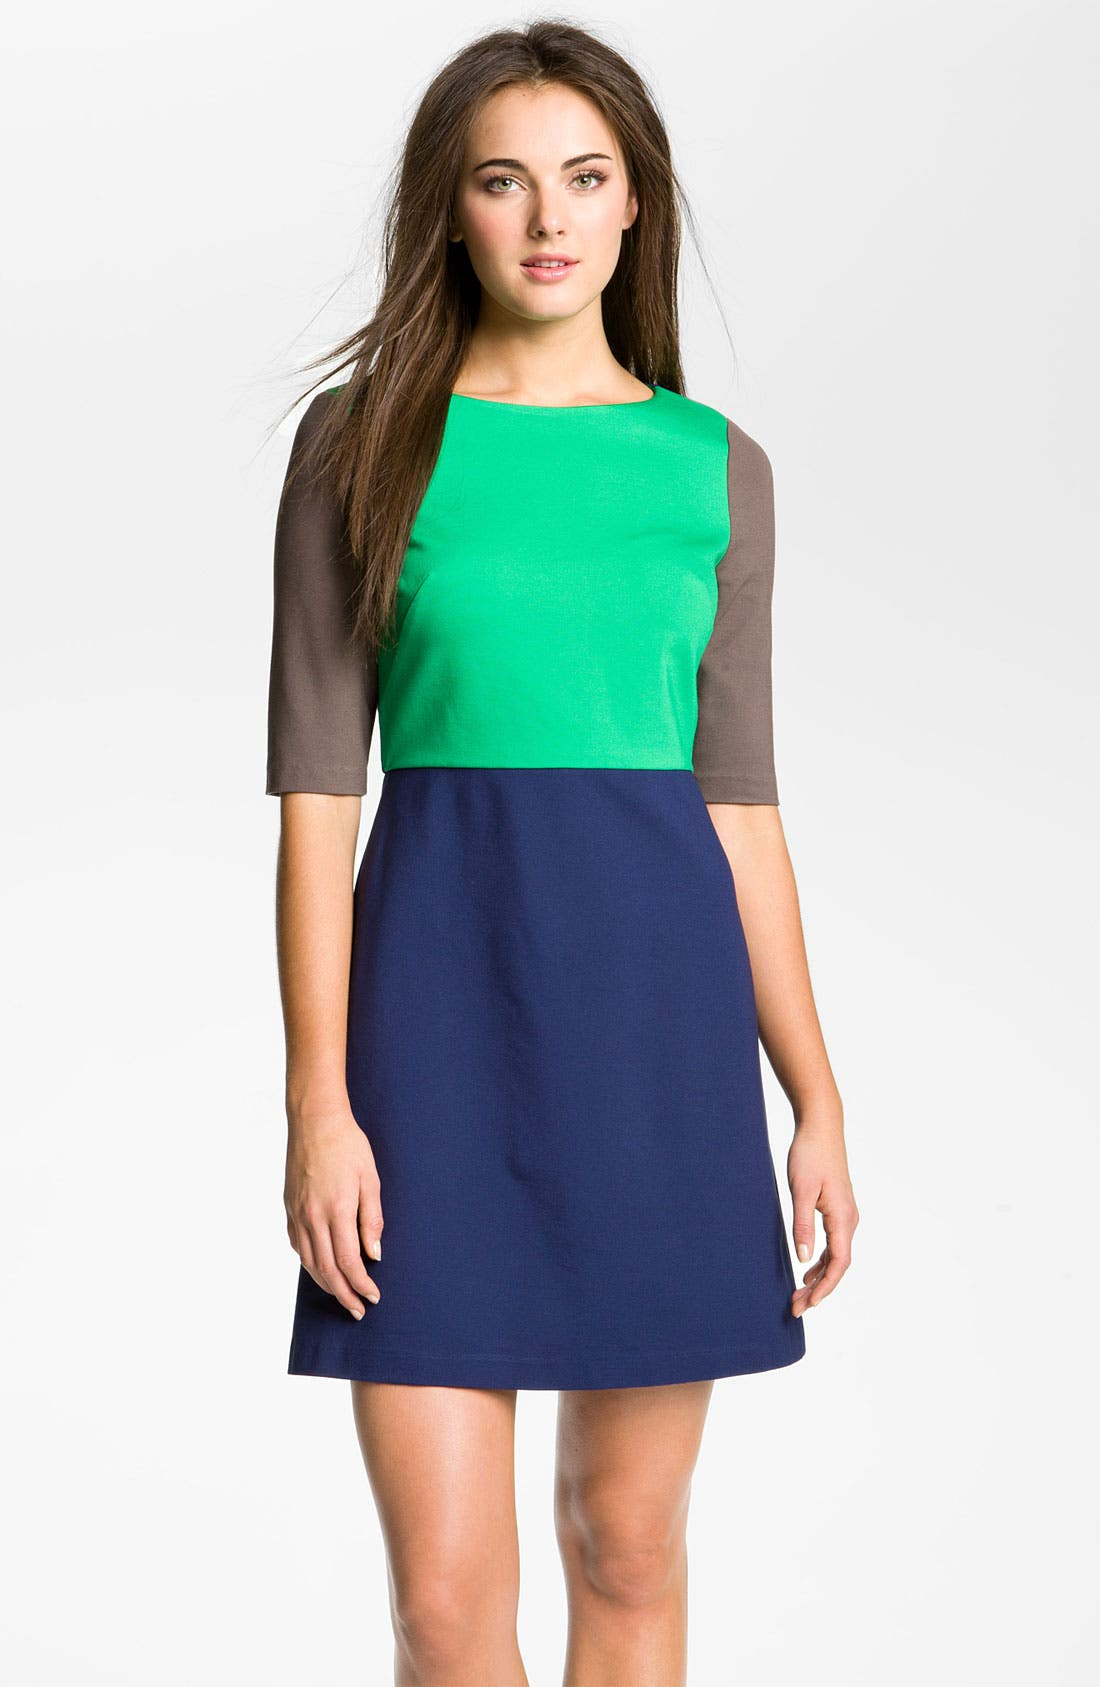 Alternate Image 1 Selected - Suzi Chin for Maggy Boutique Colorblock Ponte Dress